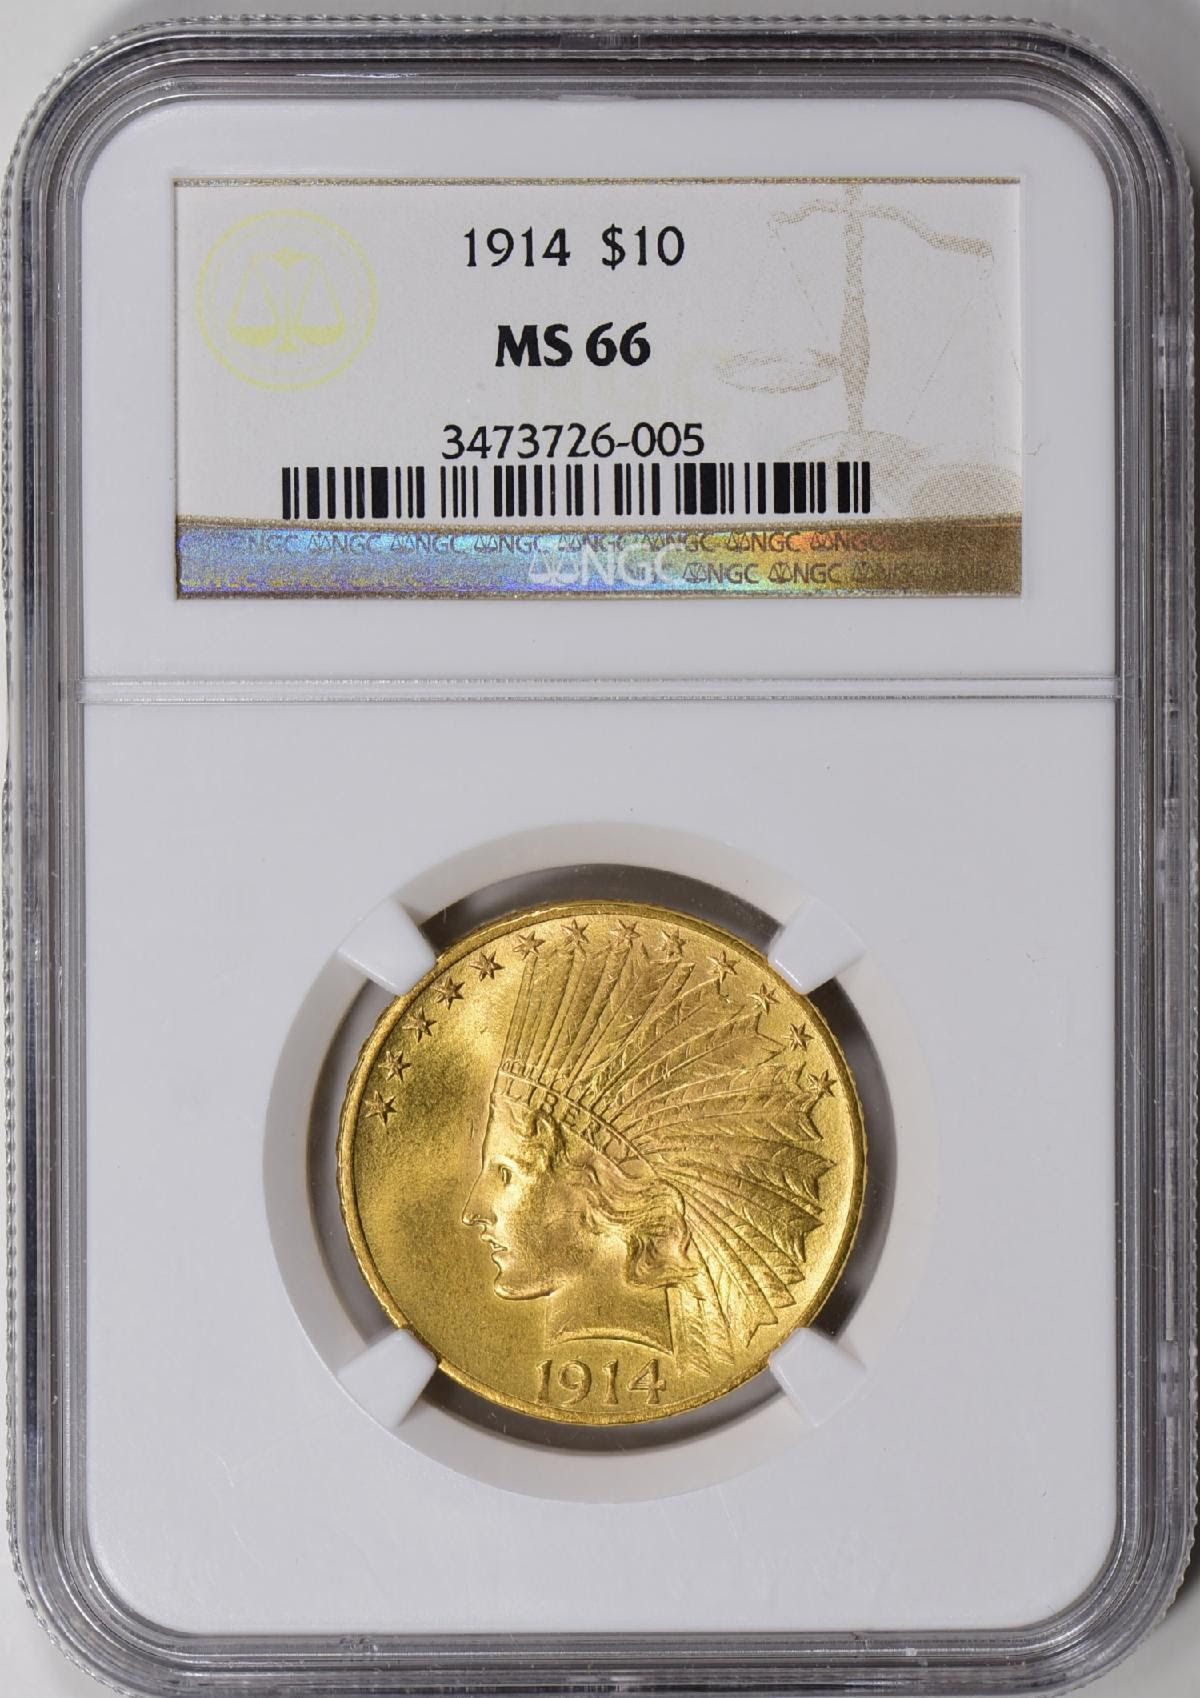 1914 Indian Head $10 gold eagle MS66. Image courtesy NCIC, Doug Davis